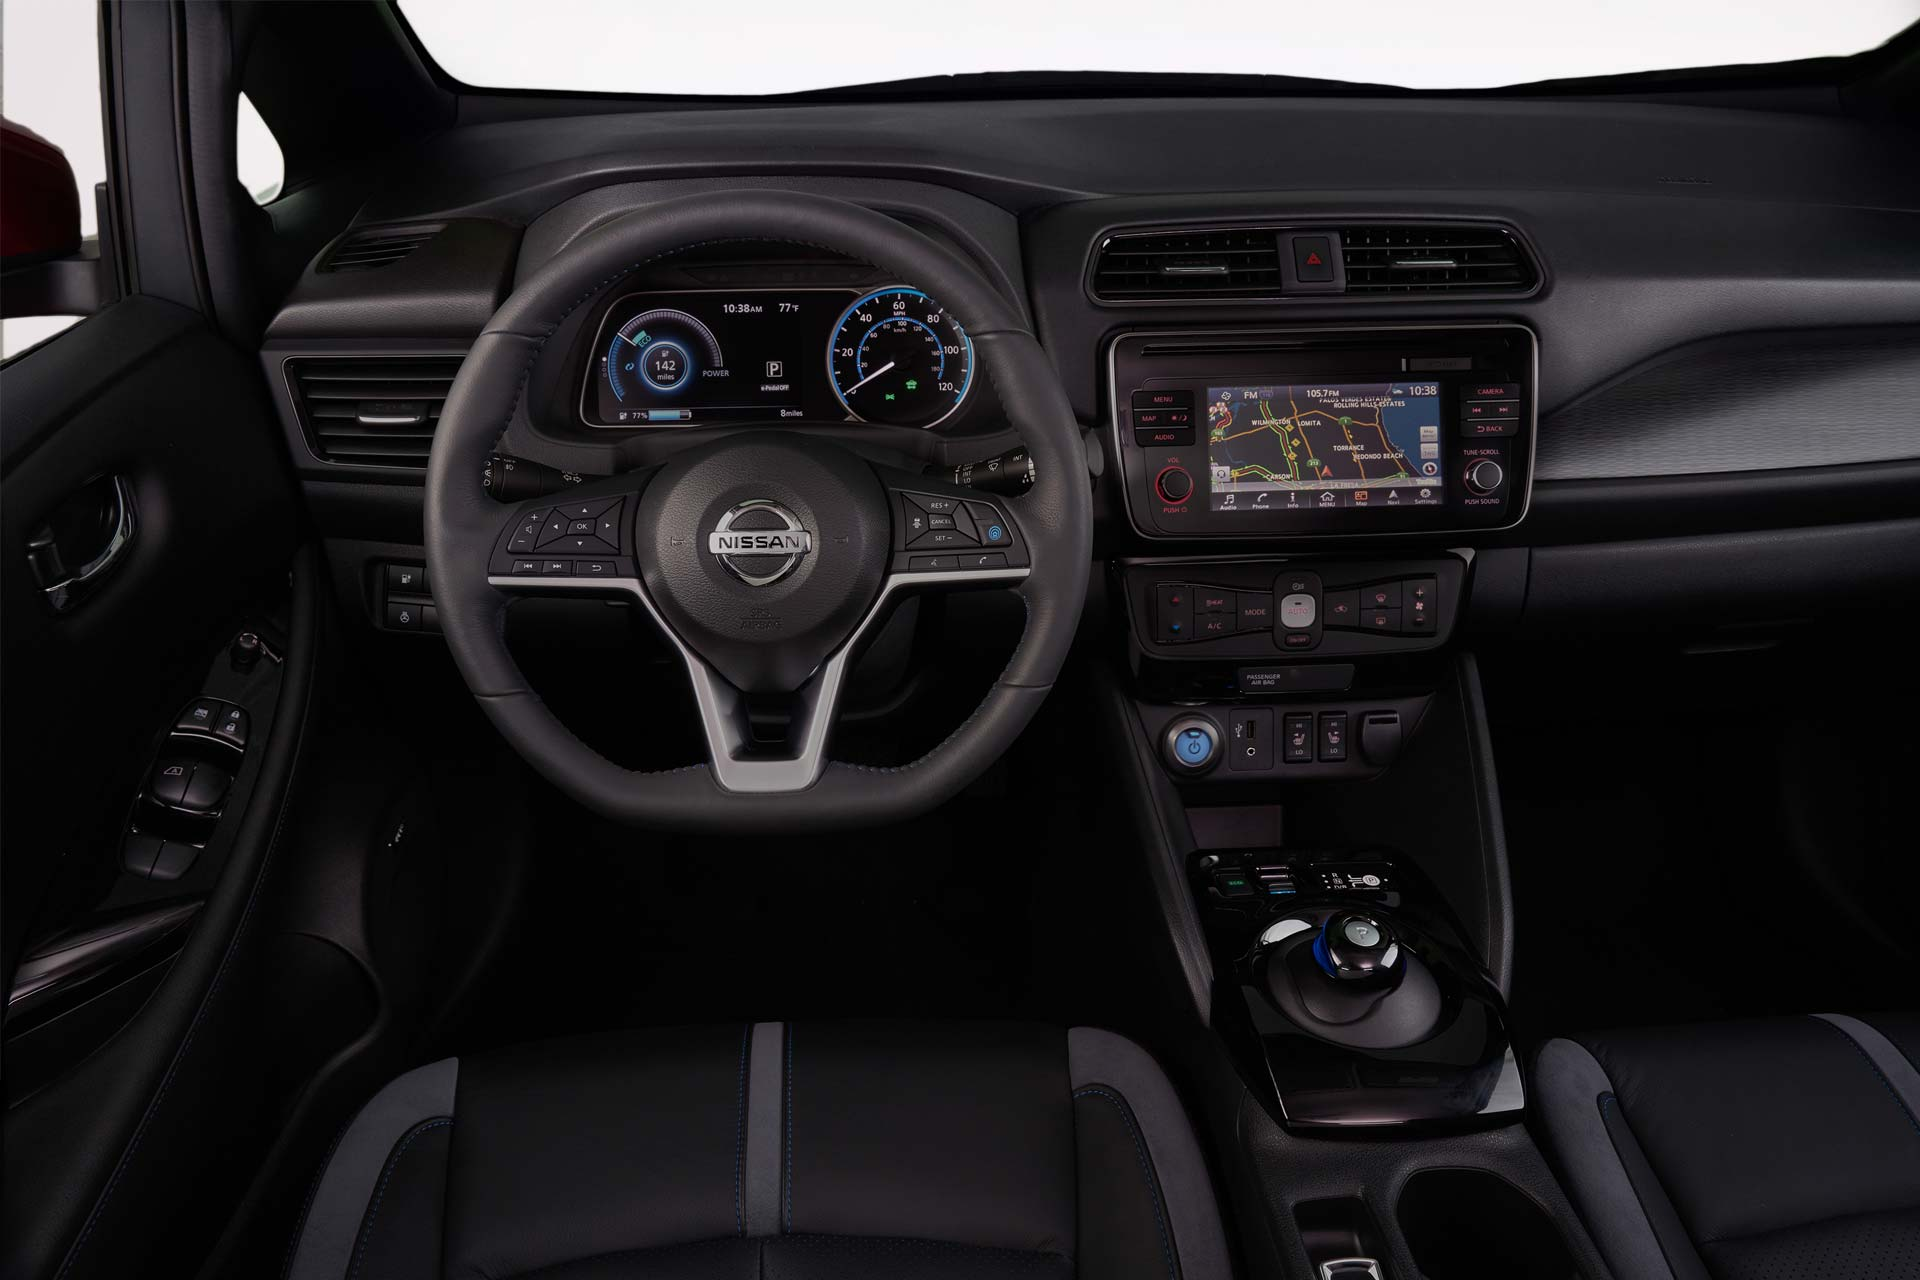 2018-Nissan-LEAF-interior